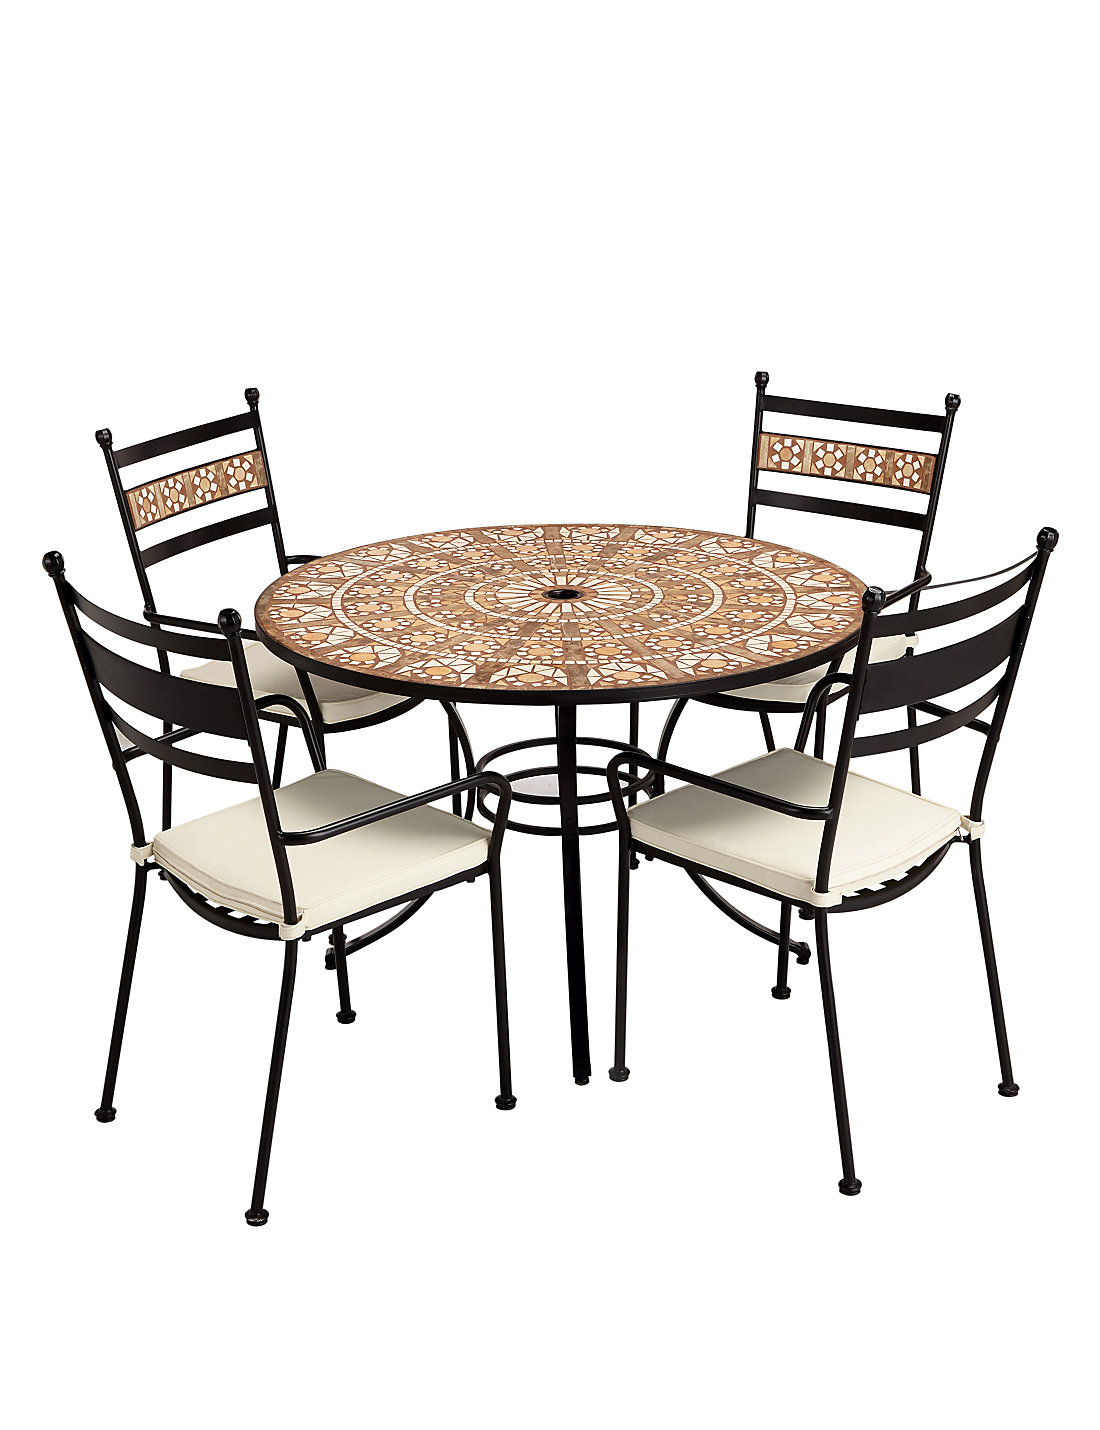 Petra round table 4 chairs ms petra round table 4 chairs geotapseo Choice Image